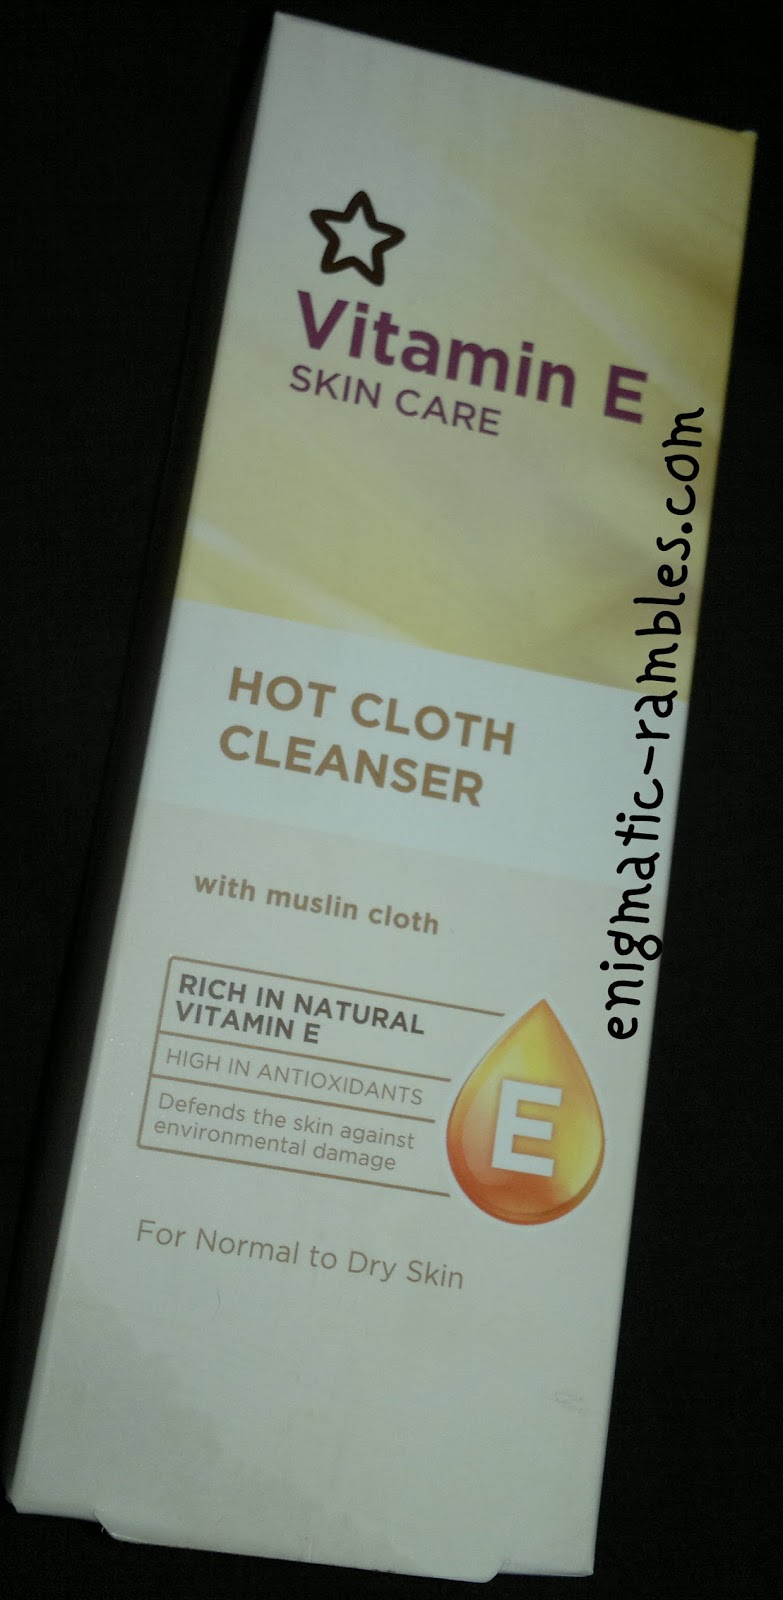 Vitamin-E-Hot-Cloth-Cleanser